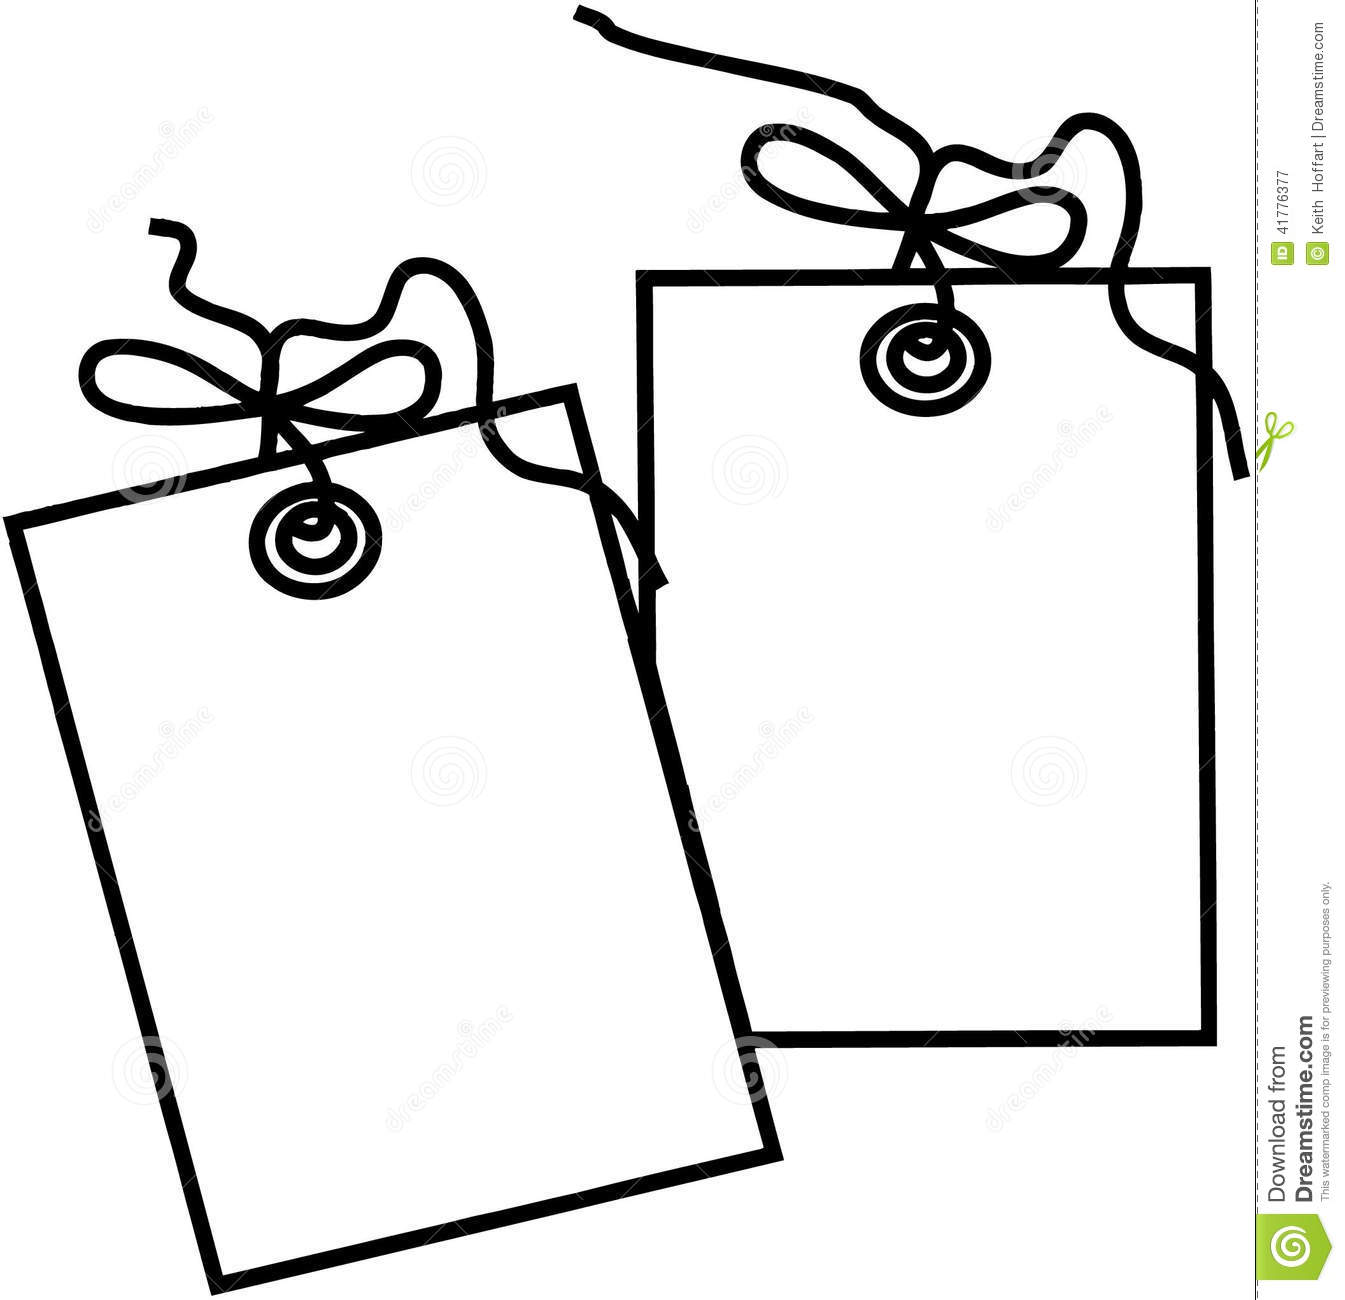 gift tag outline free download best gift tag outline on clipartmag com